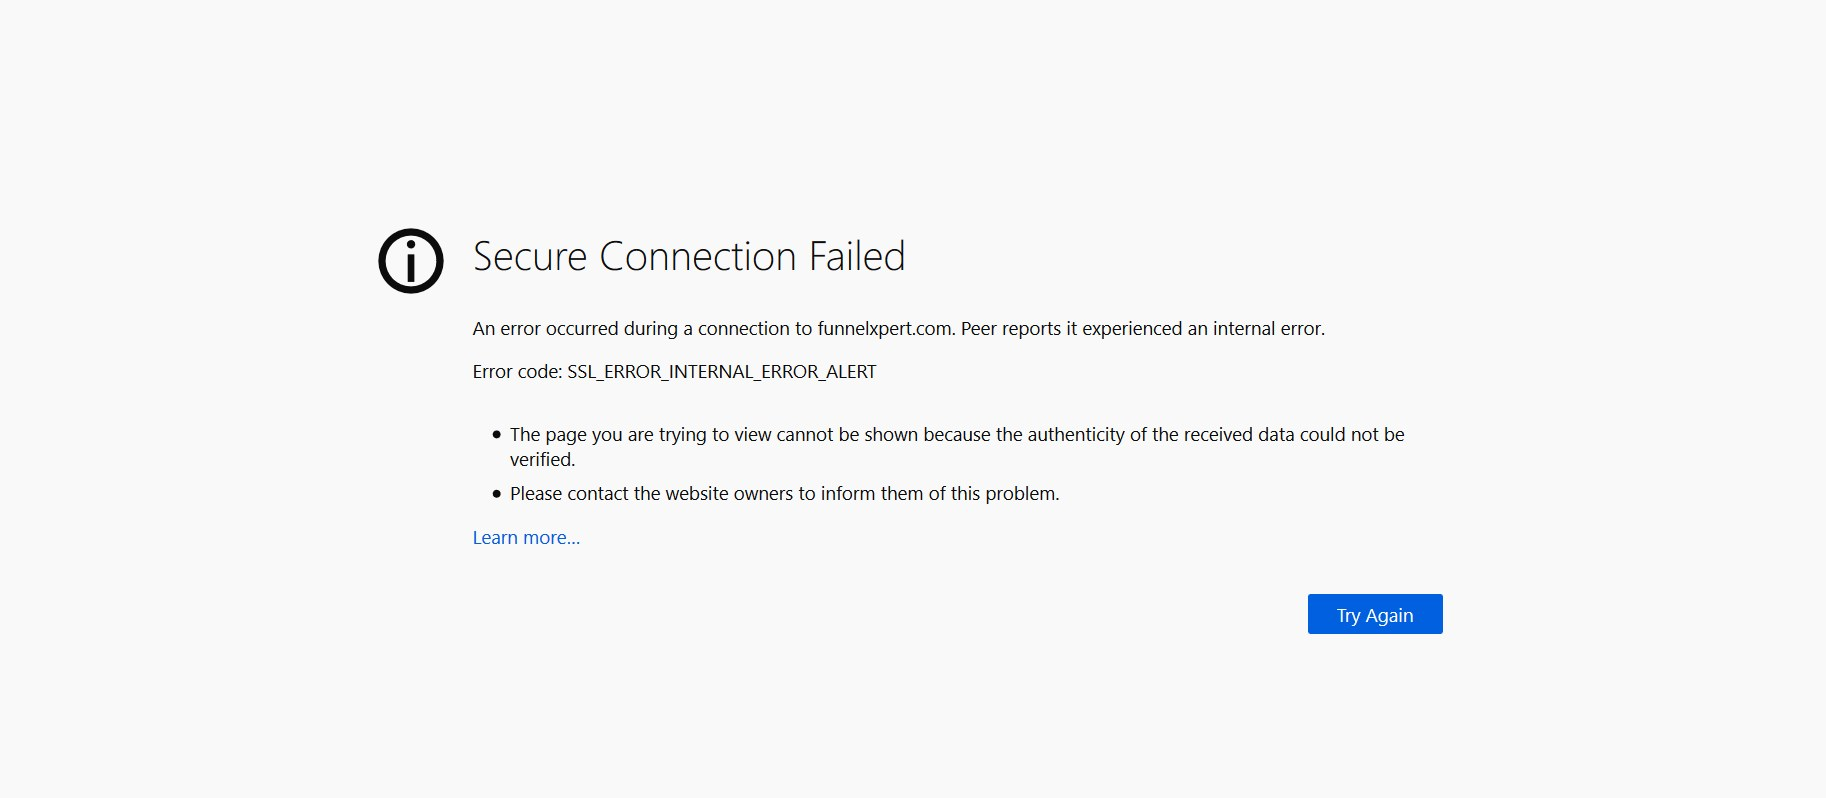 SSL_ERROR_INTERNAL_ERROR_ALERT